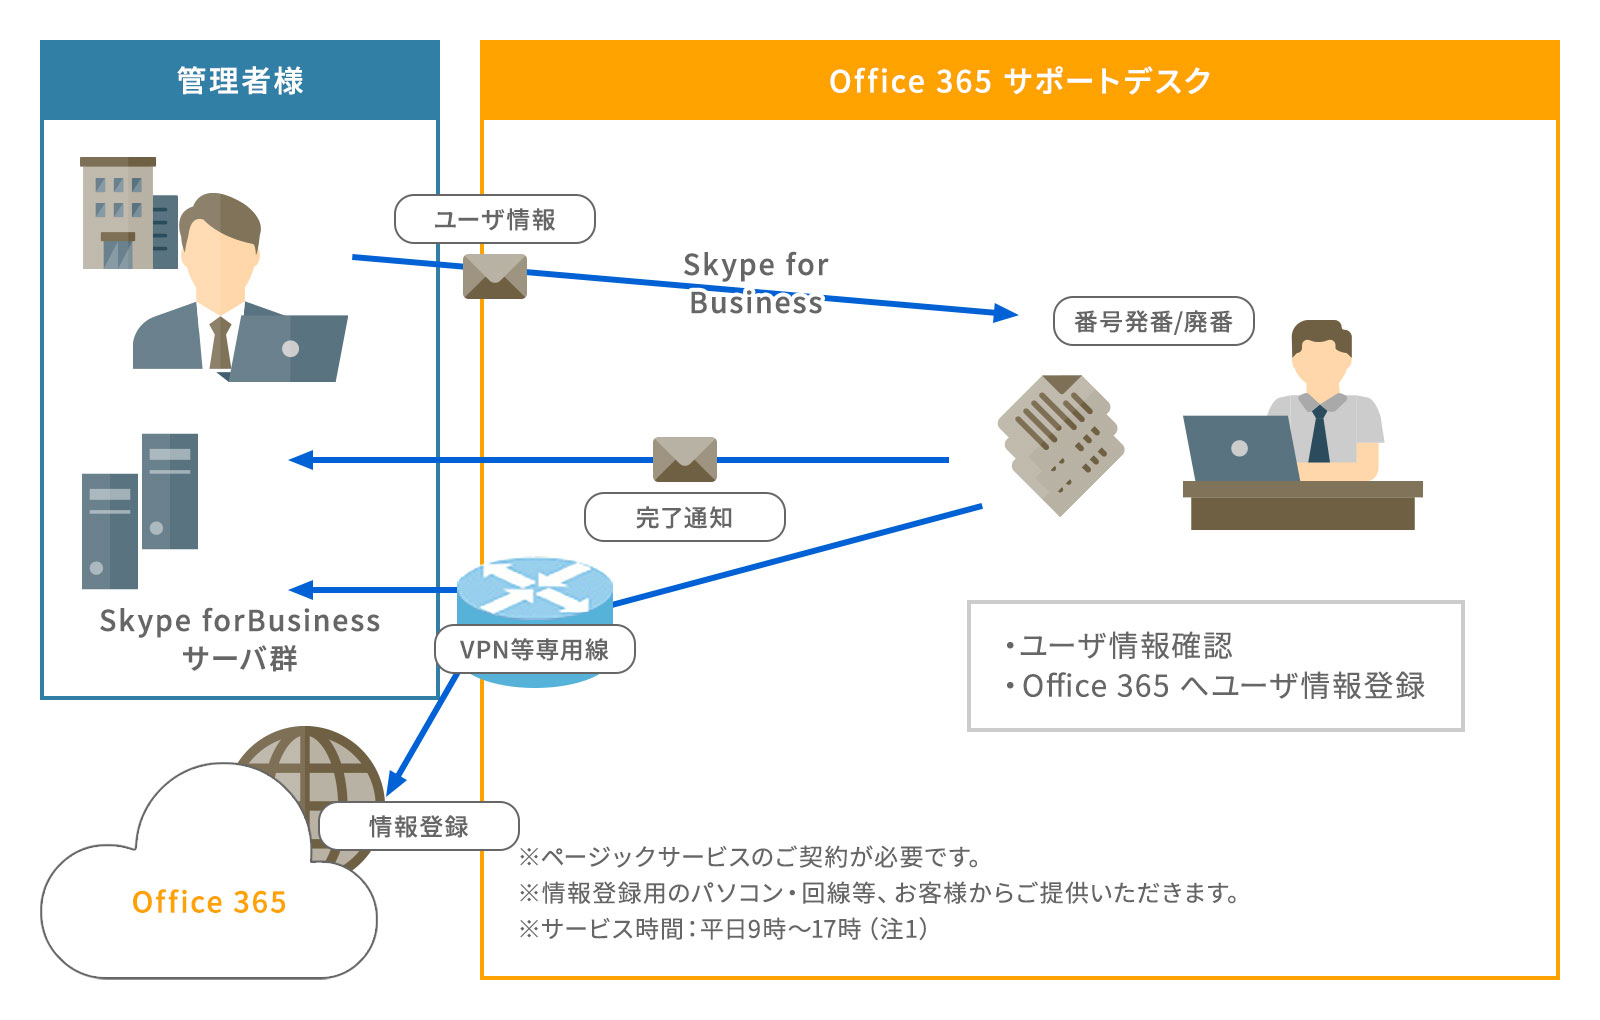 Skype for Business 運用代行 情報登録サービス